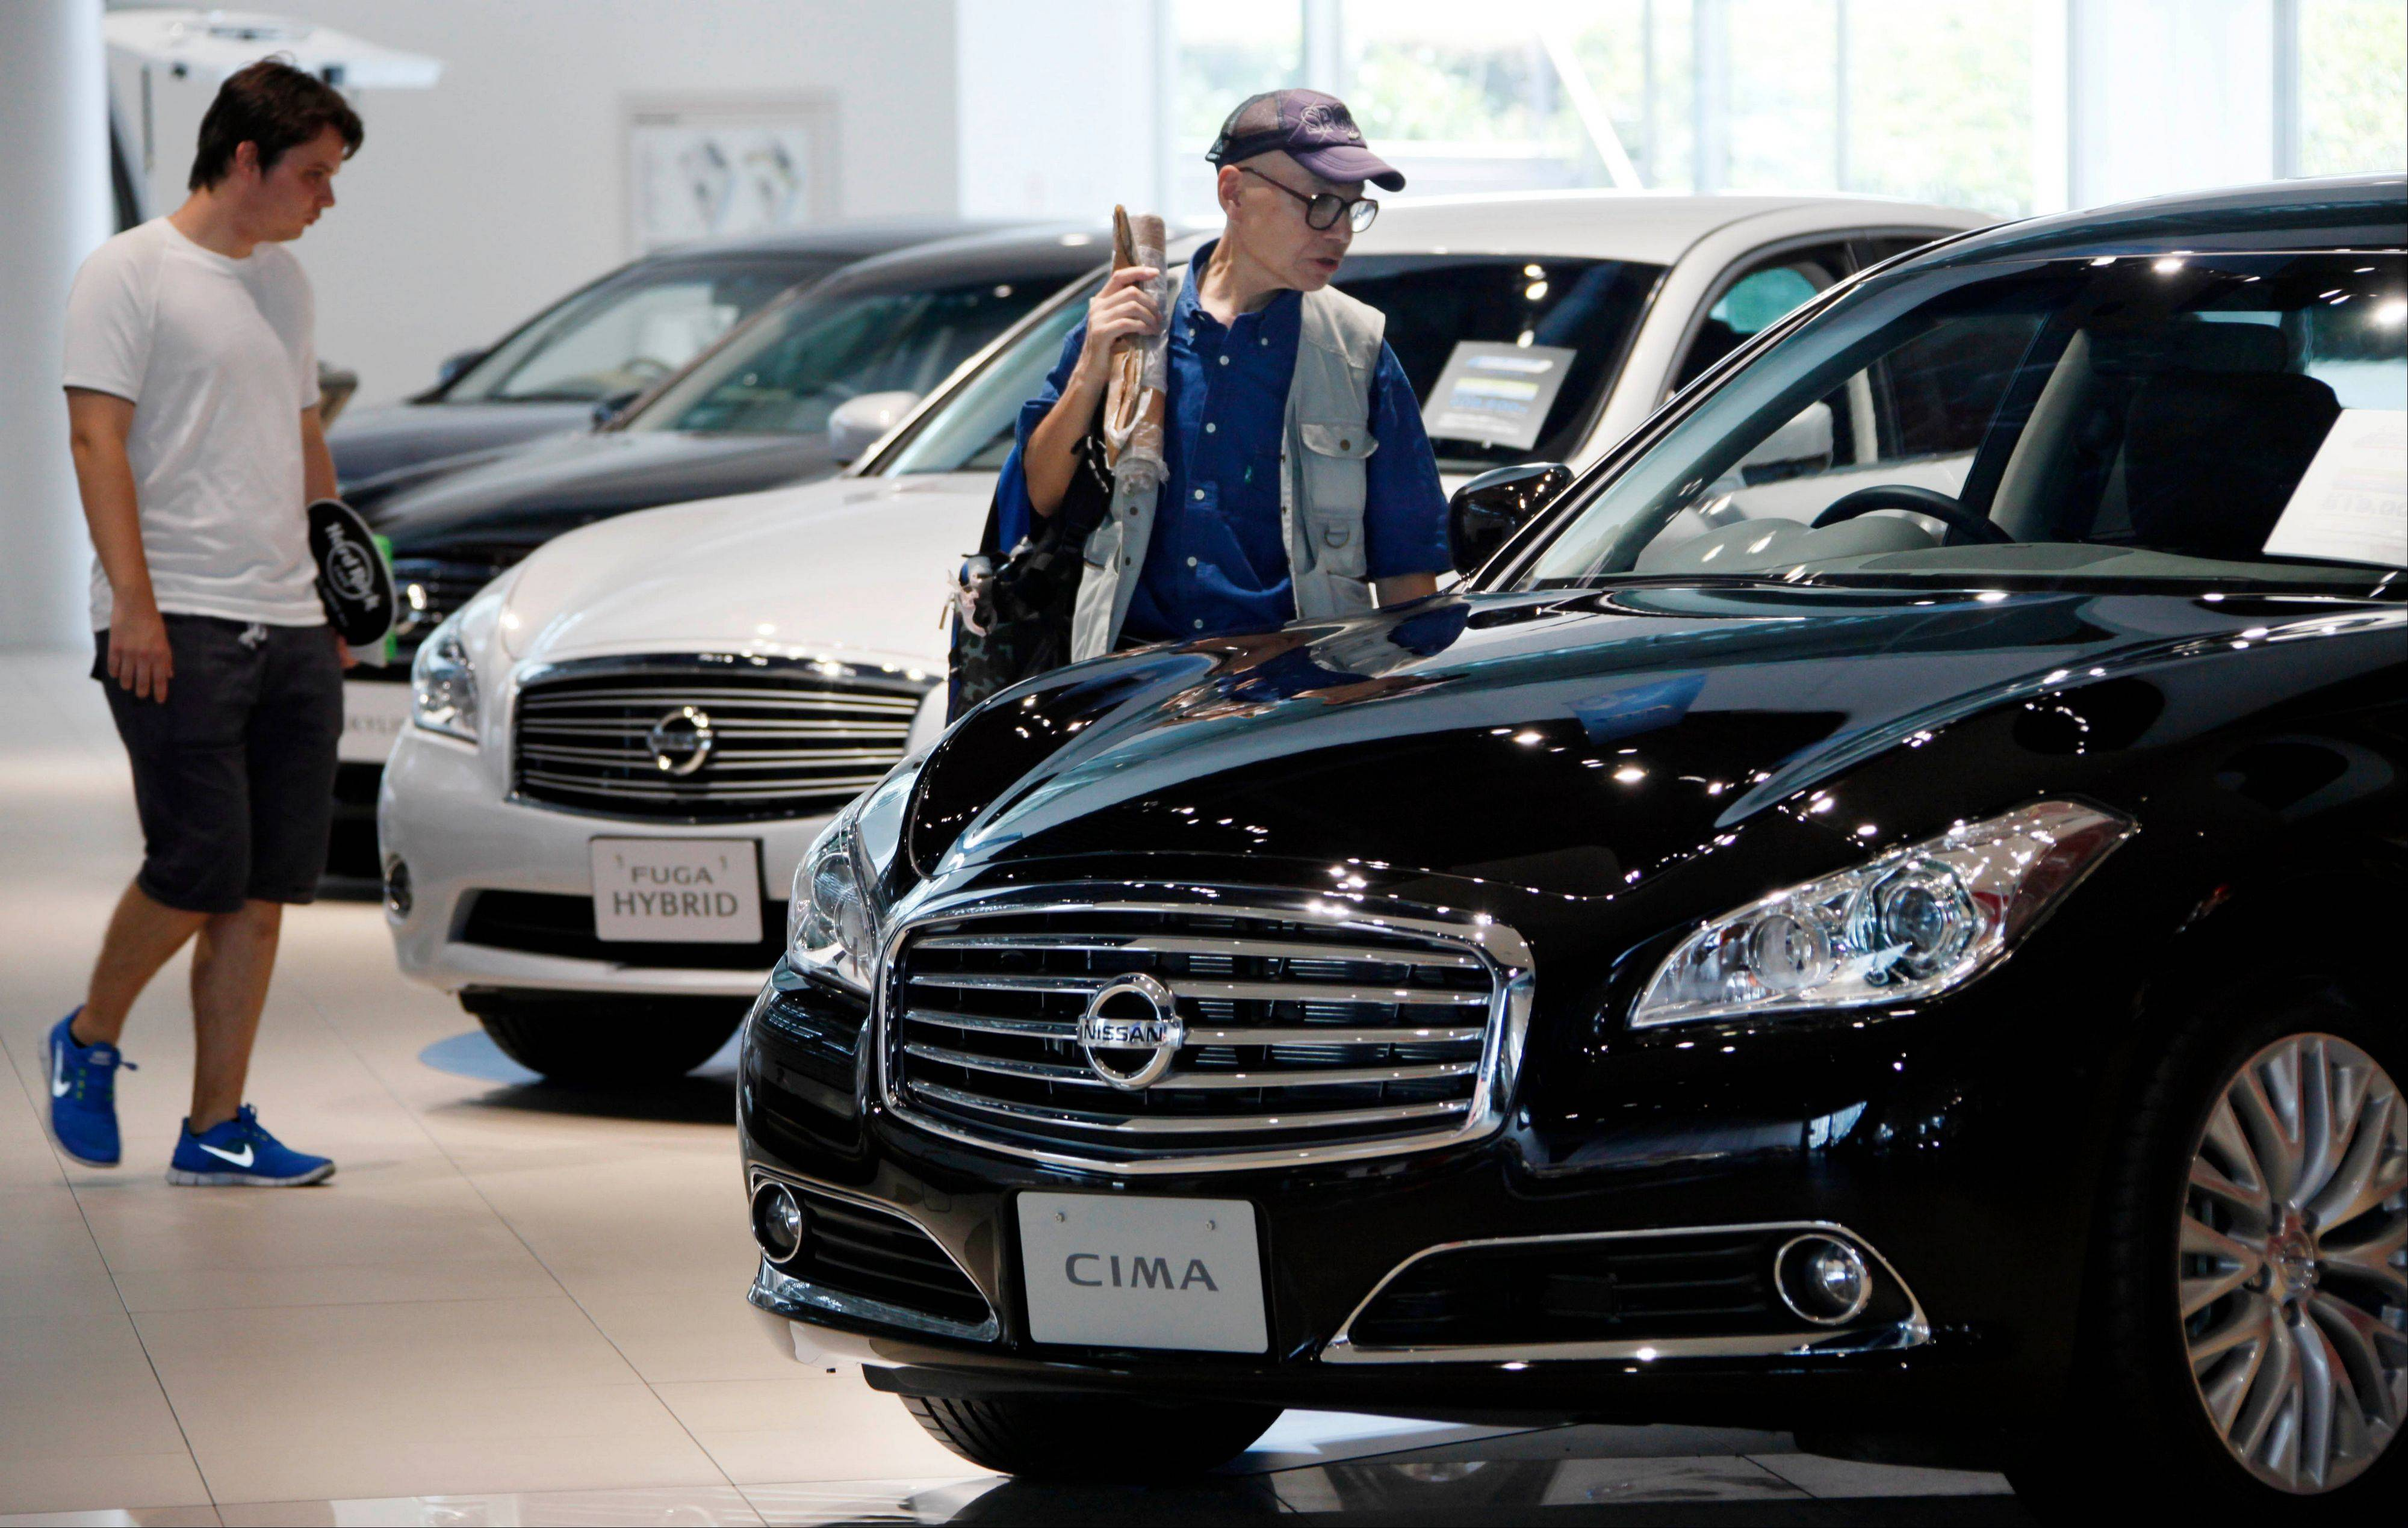 Visitors inspect cars at a gallery at the Nissan Motor Co. global headquarters in Yokohama, Thursday.